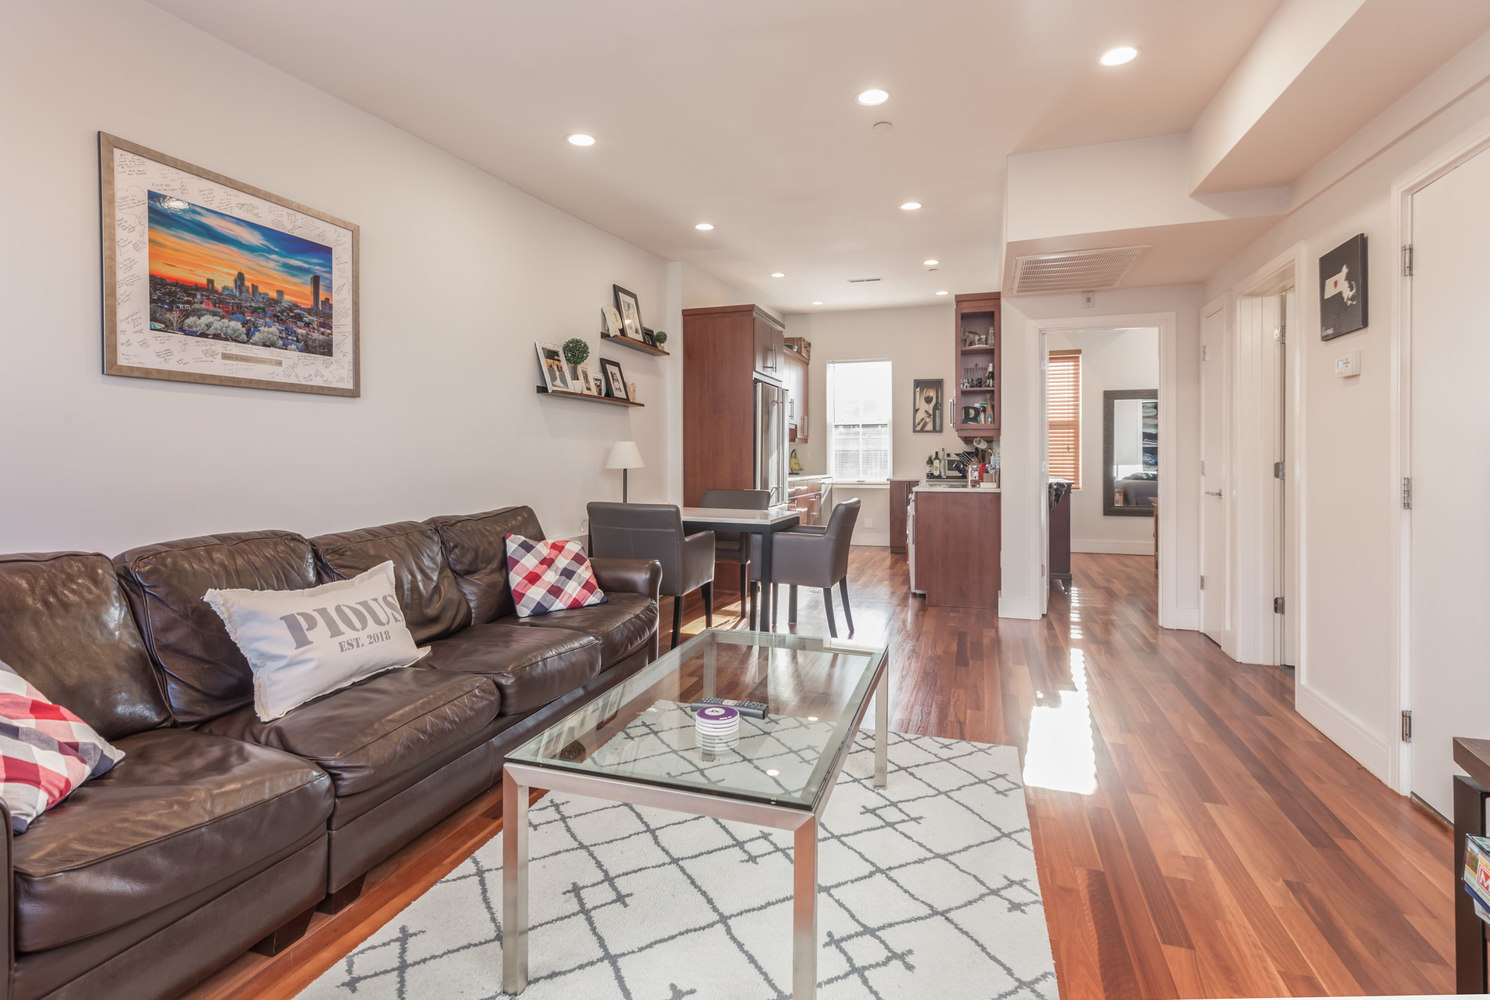 655 Tremont Street, Unit 9 Boston, MA 02118